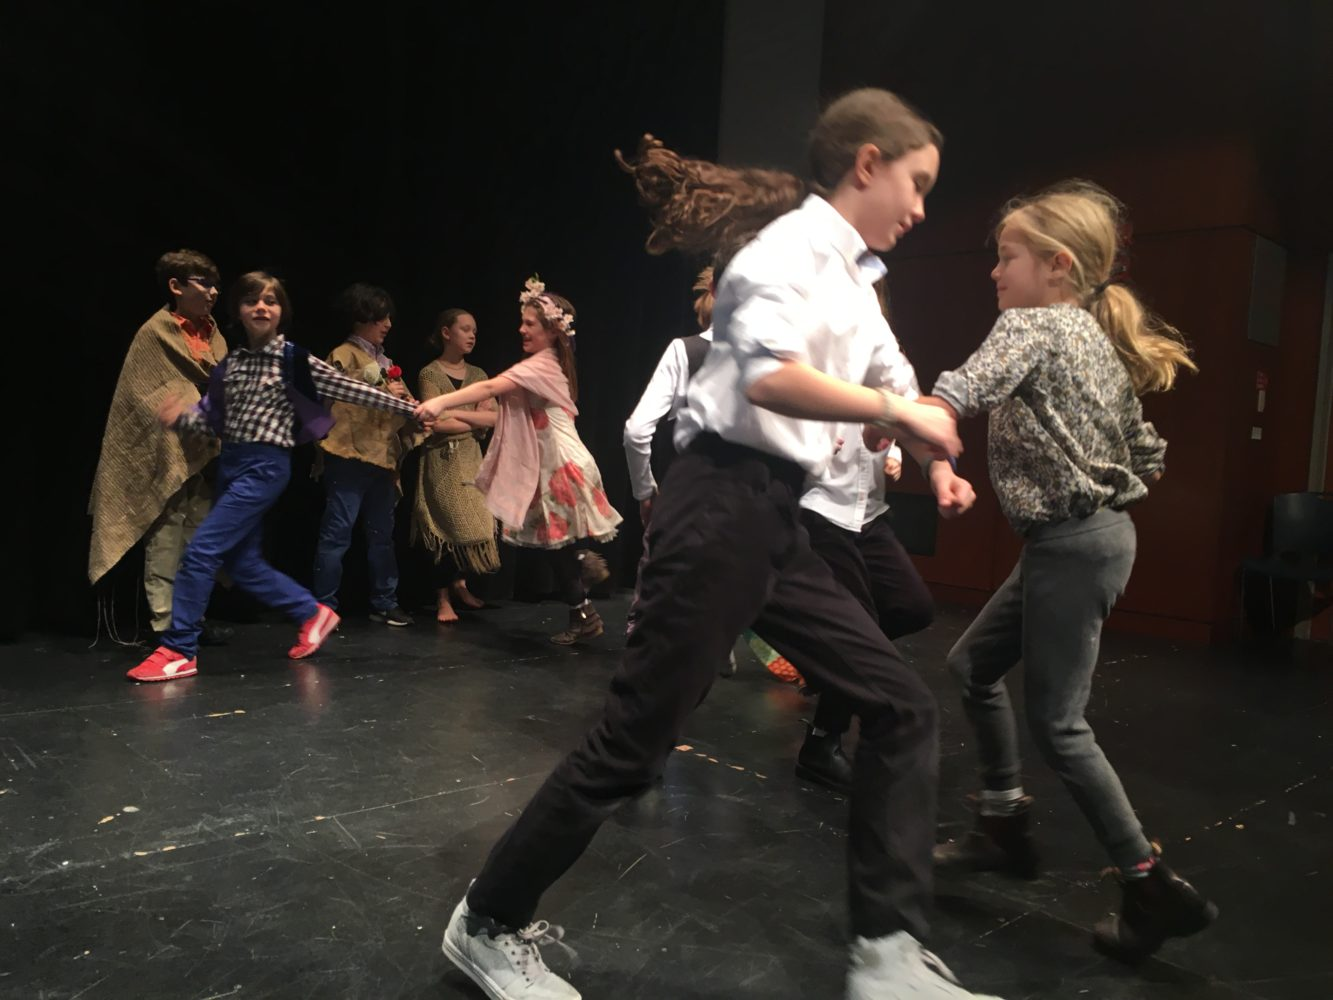 middle school students rehearse and perform shakespeare for theatre class on stage